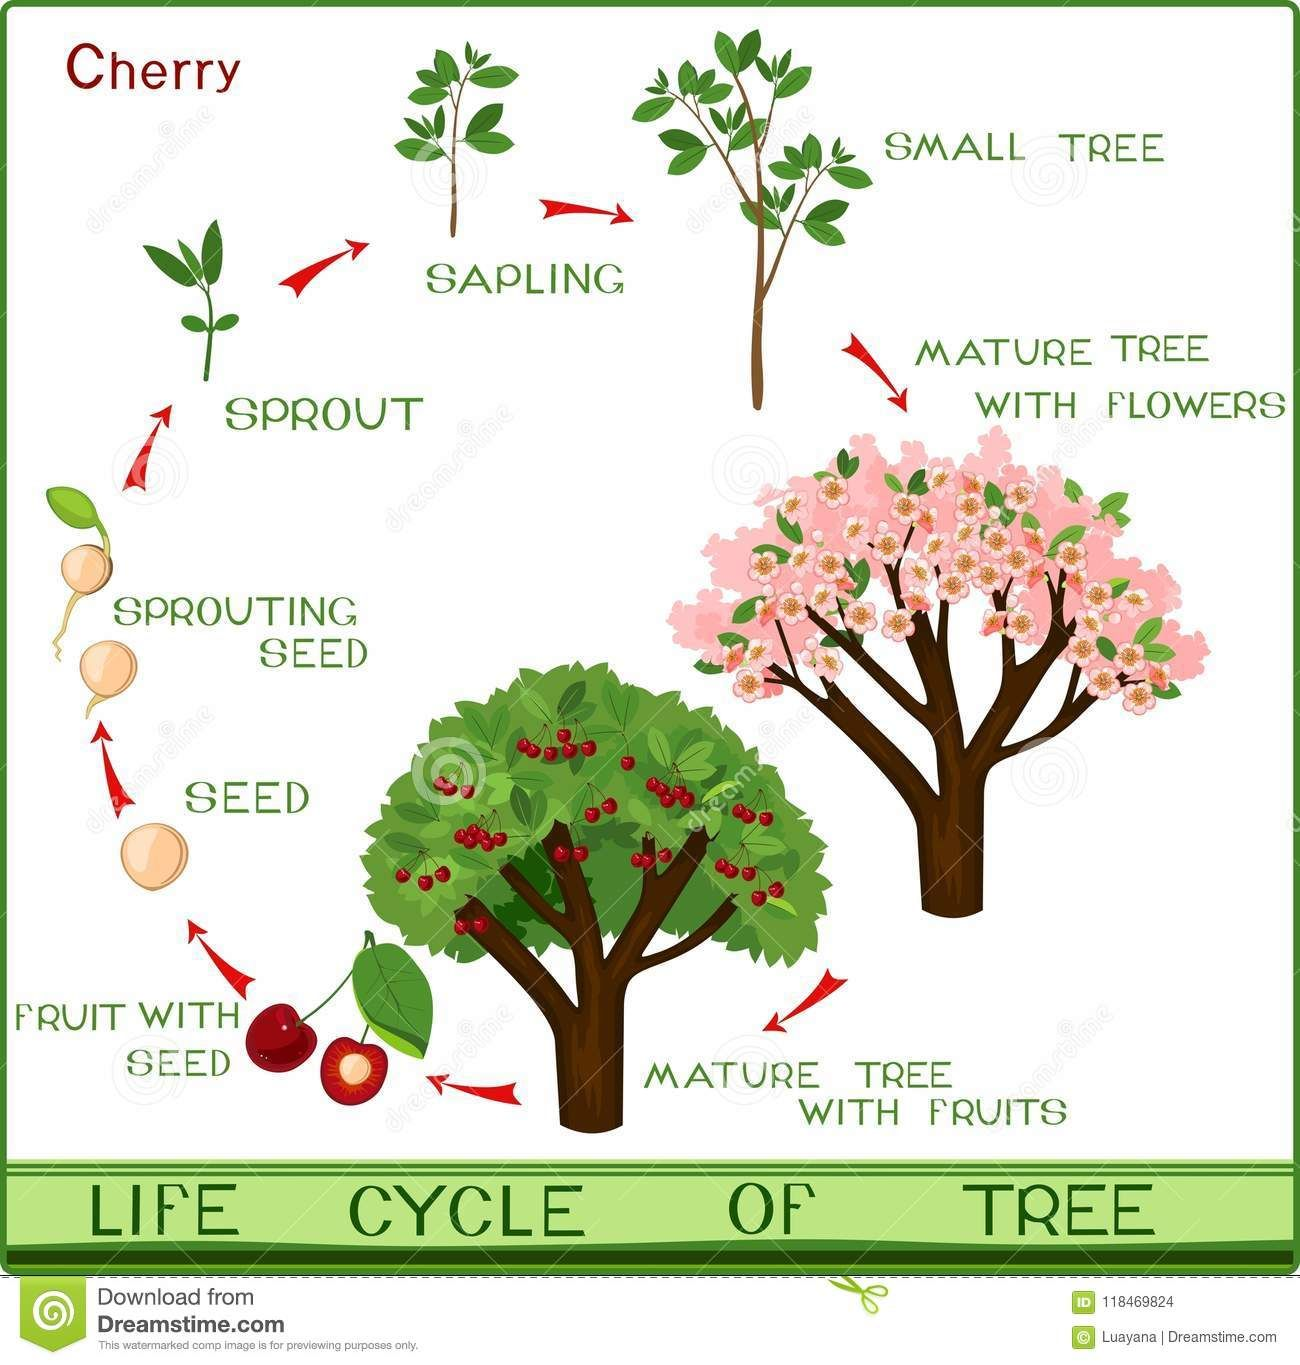 Pin By Ibrahim Shariff On Science Experiment Cherry Tree Plant Life Cycle Flowering Trees